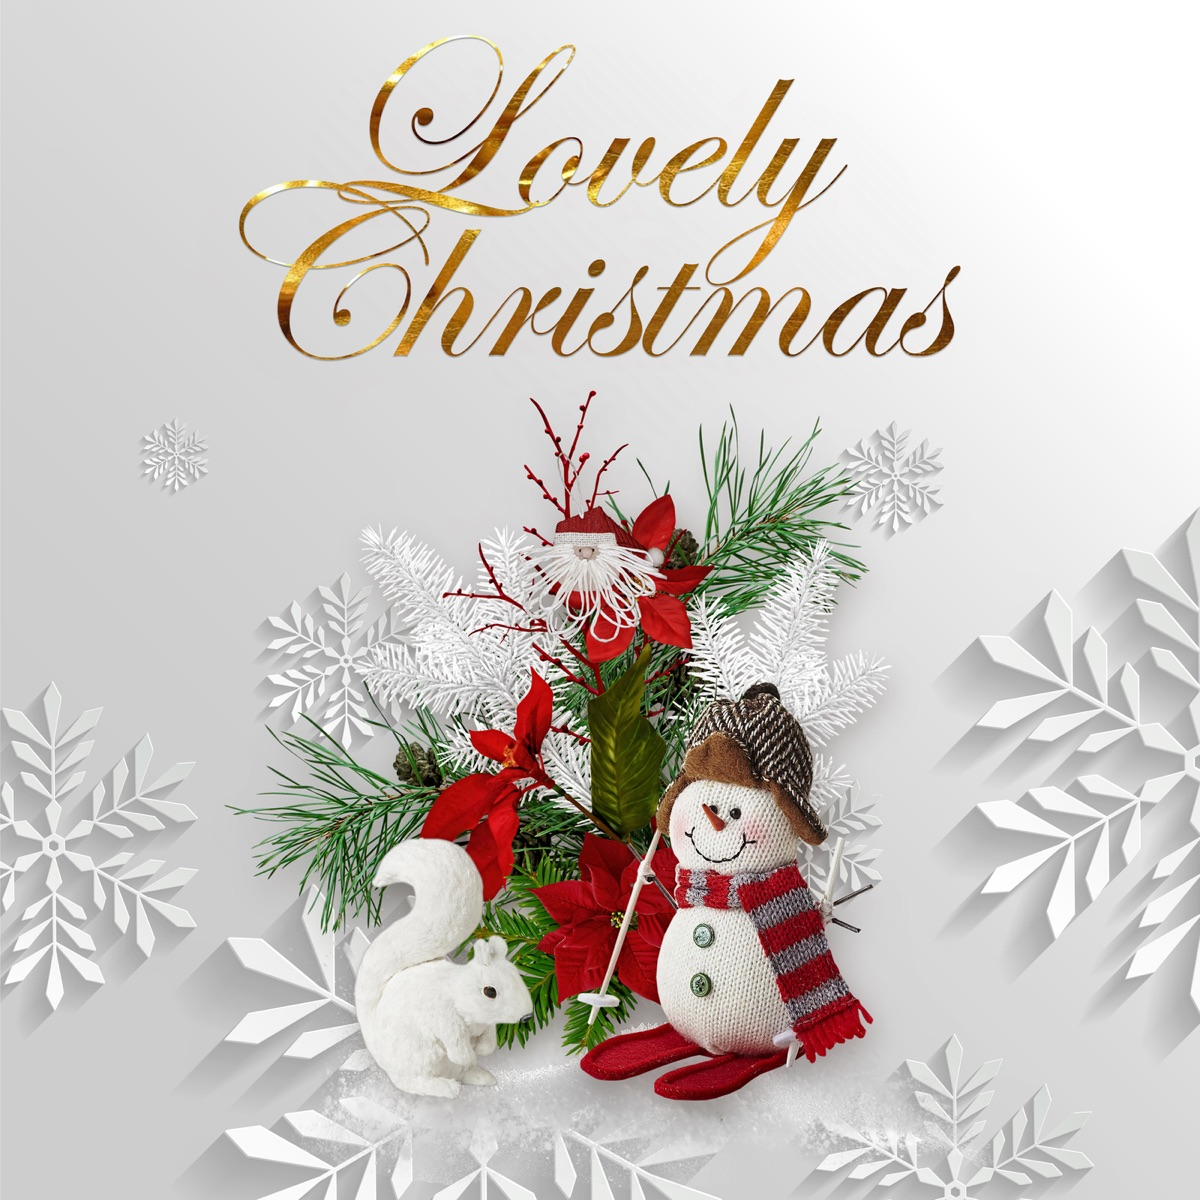 Lovely christmas the sweet sounds of christmas christmas healing carols building christmas eve atmosphere happy family dinner time merry christmas m4hsunfo